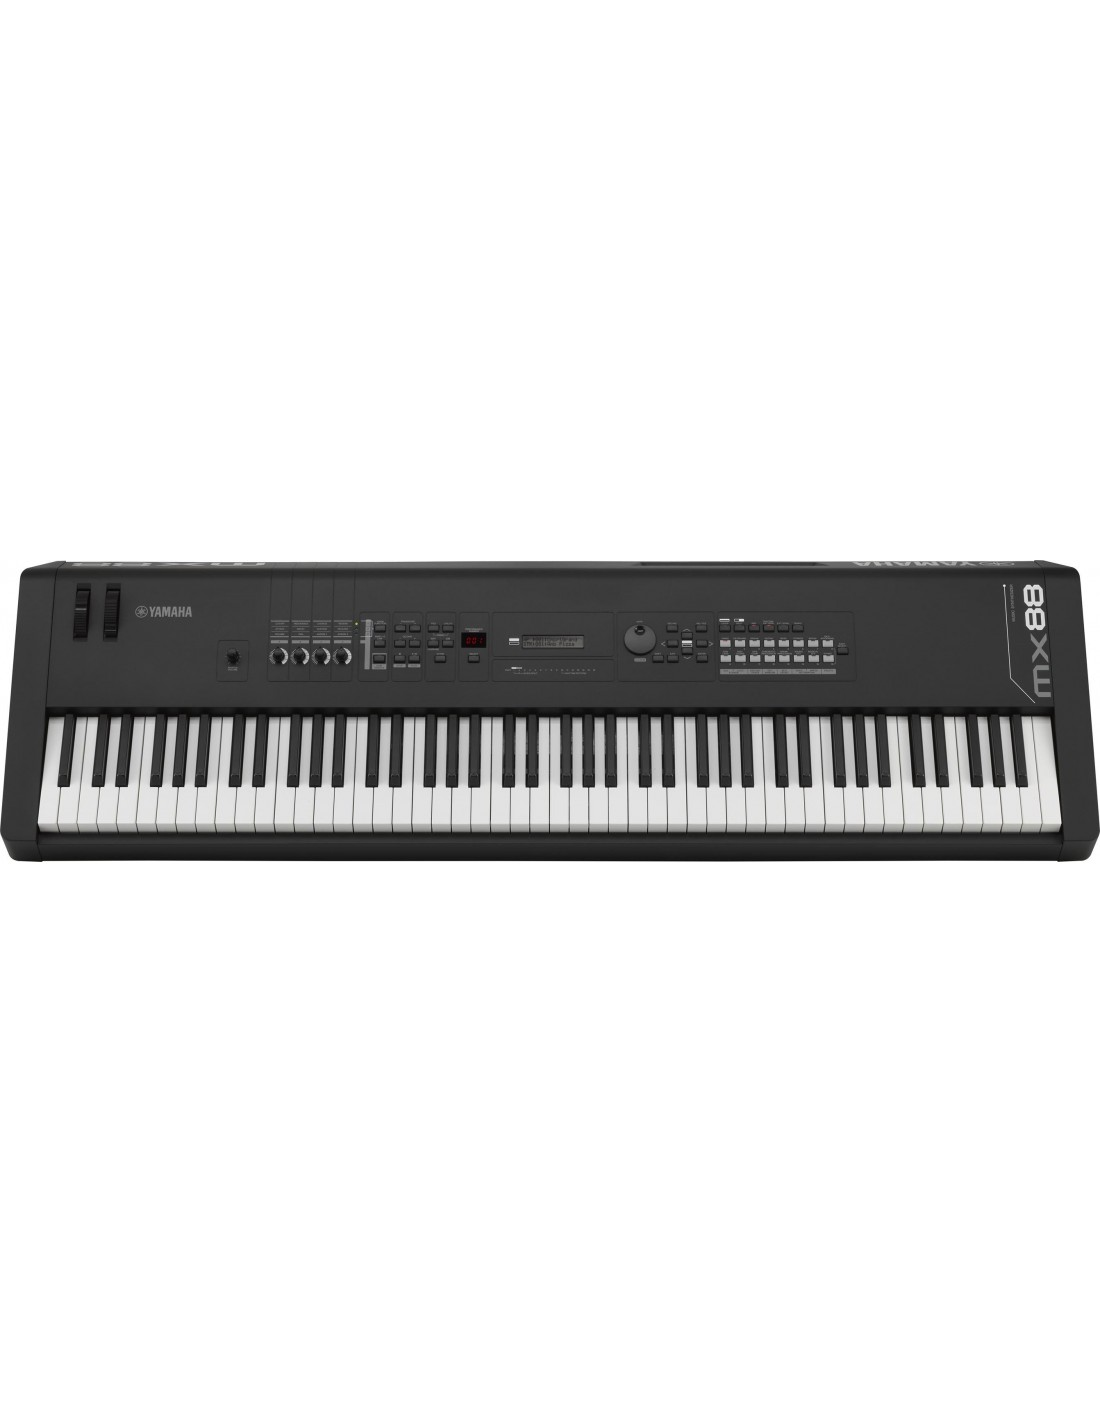 yamaha mx88 piano synth tiseur 88 notes toucher lourd. Black Bedroom Furniture Sets. Home Design Ideas